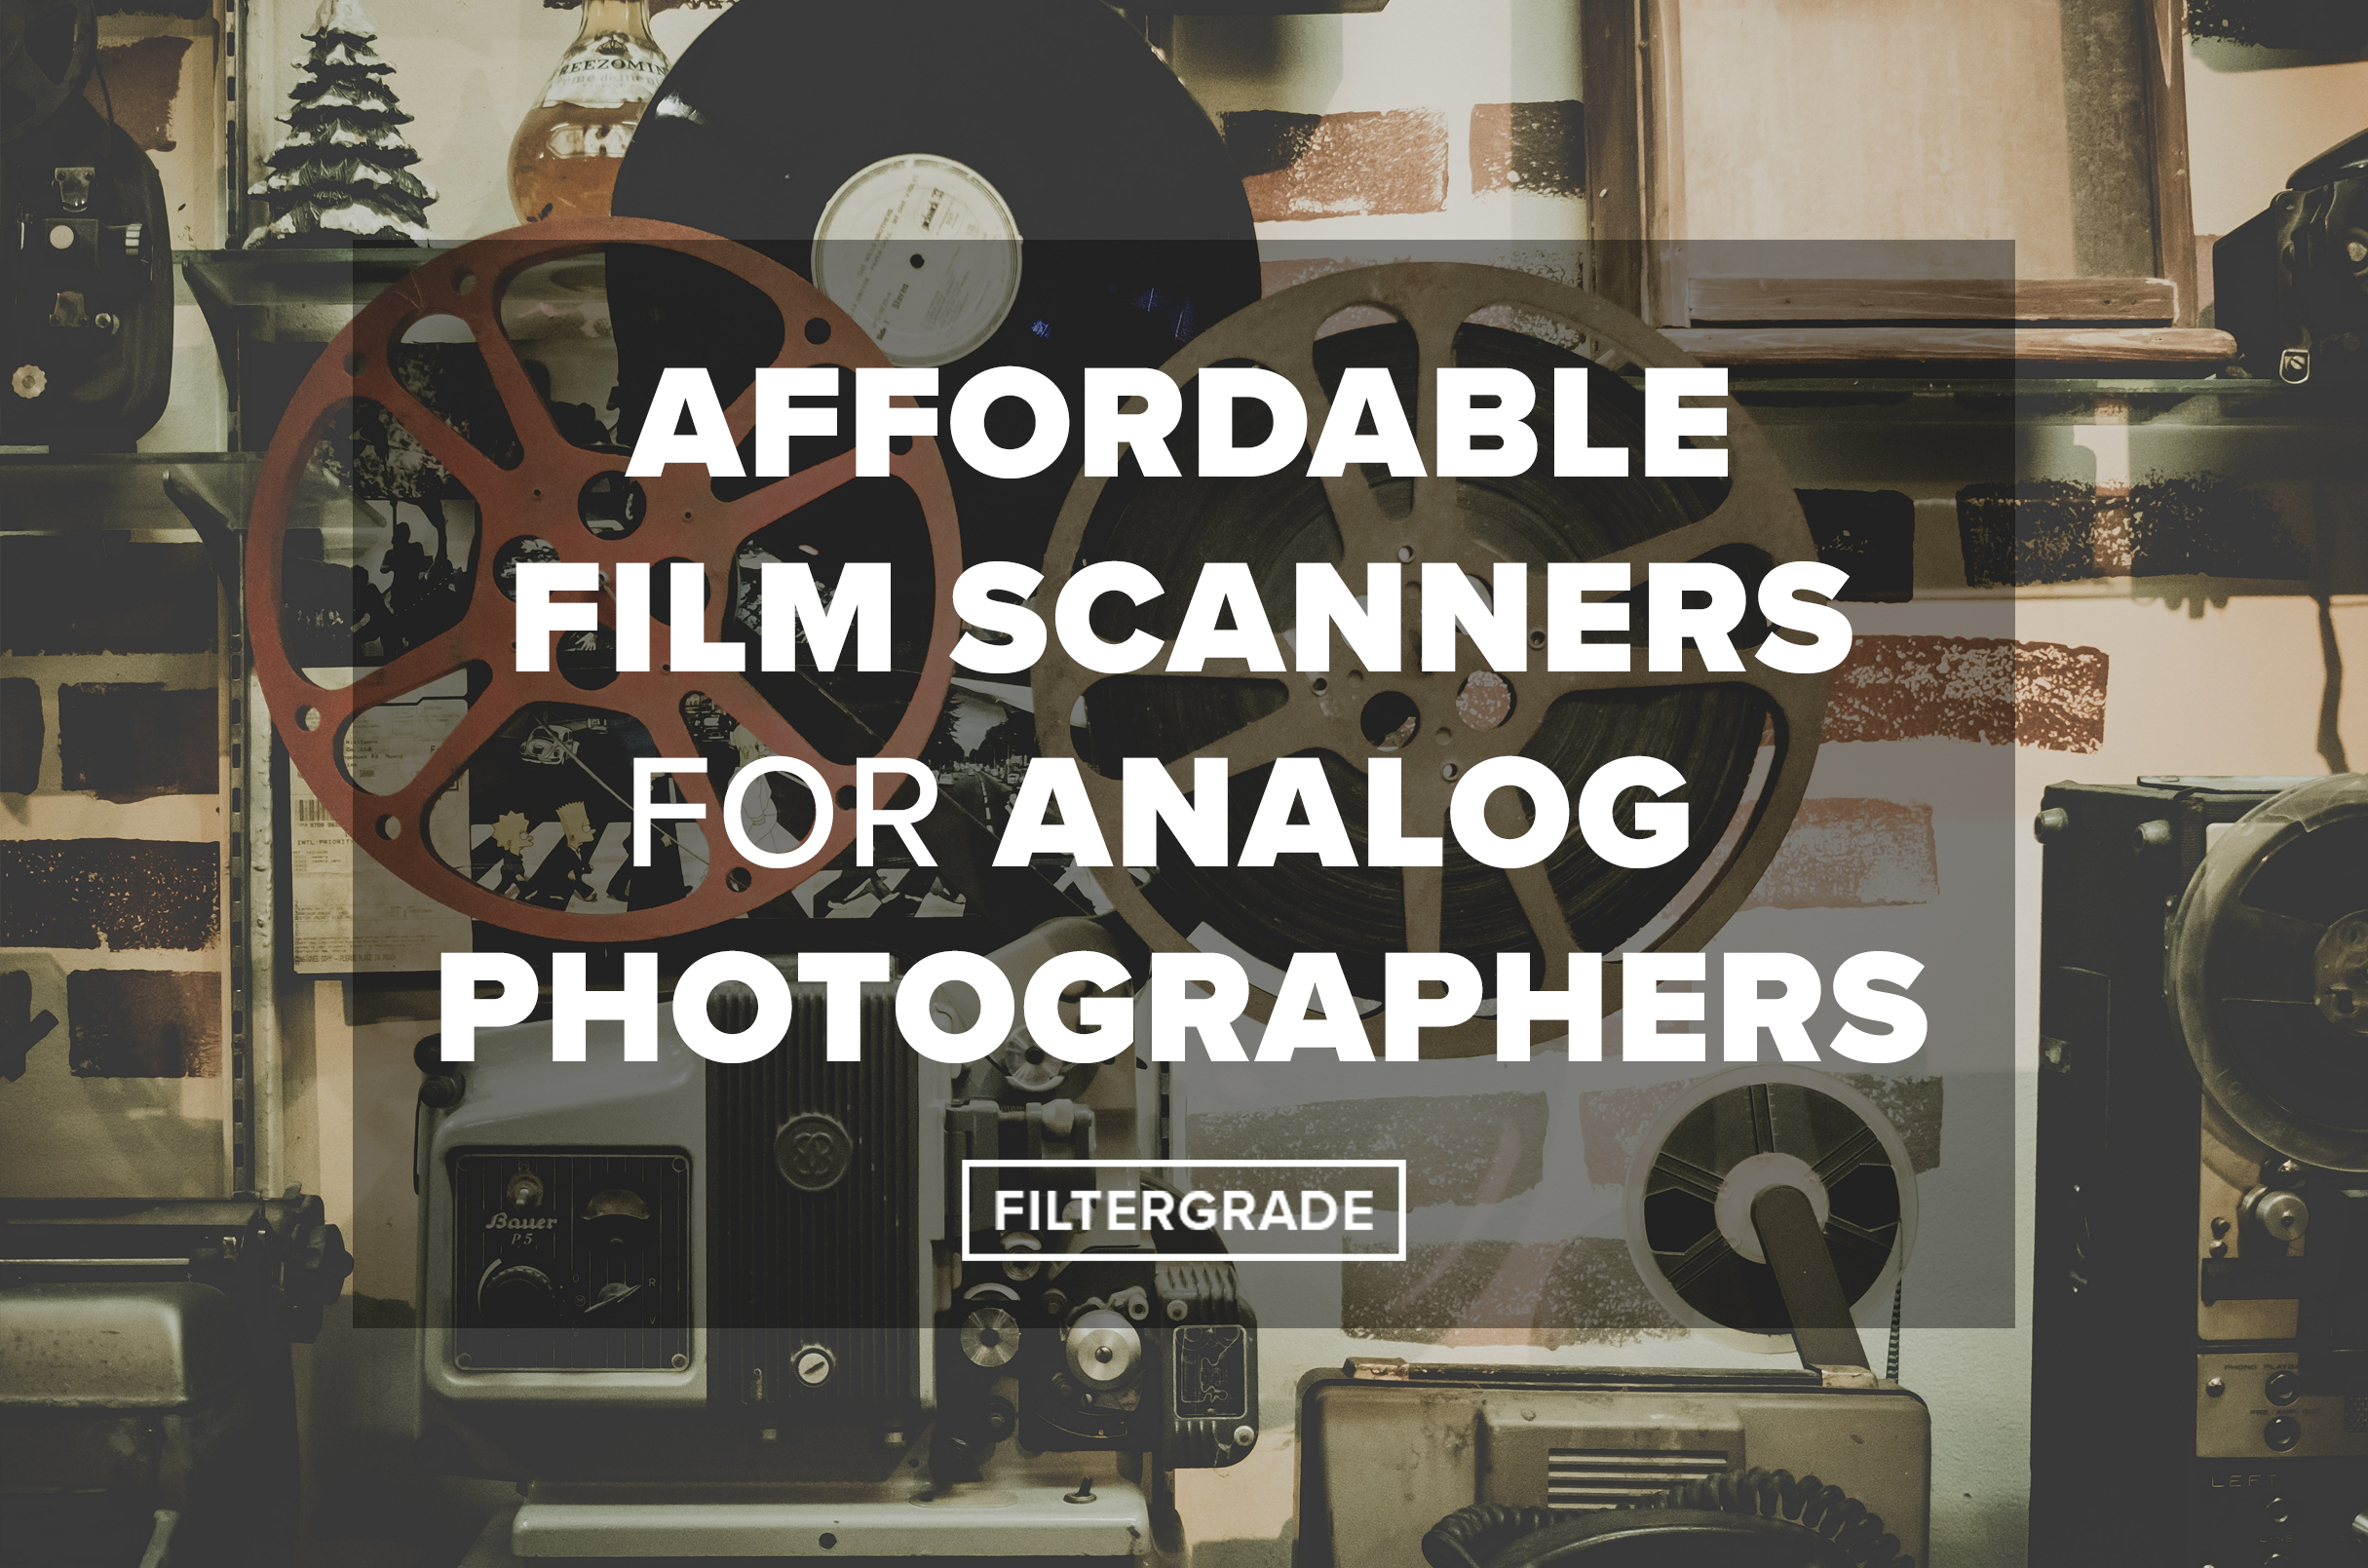 affordable film scanners for analog photographers - FilterGrade